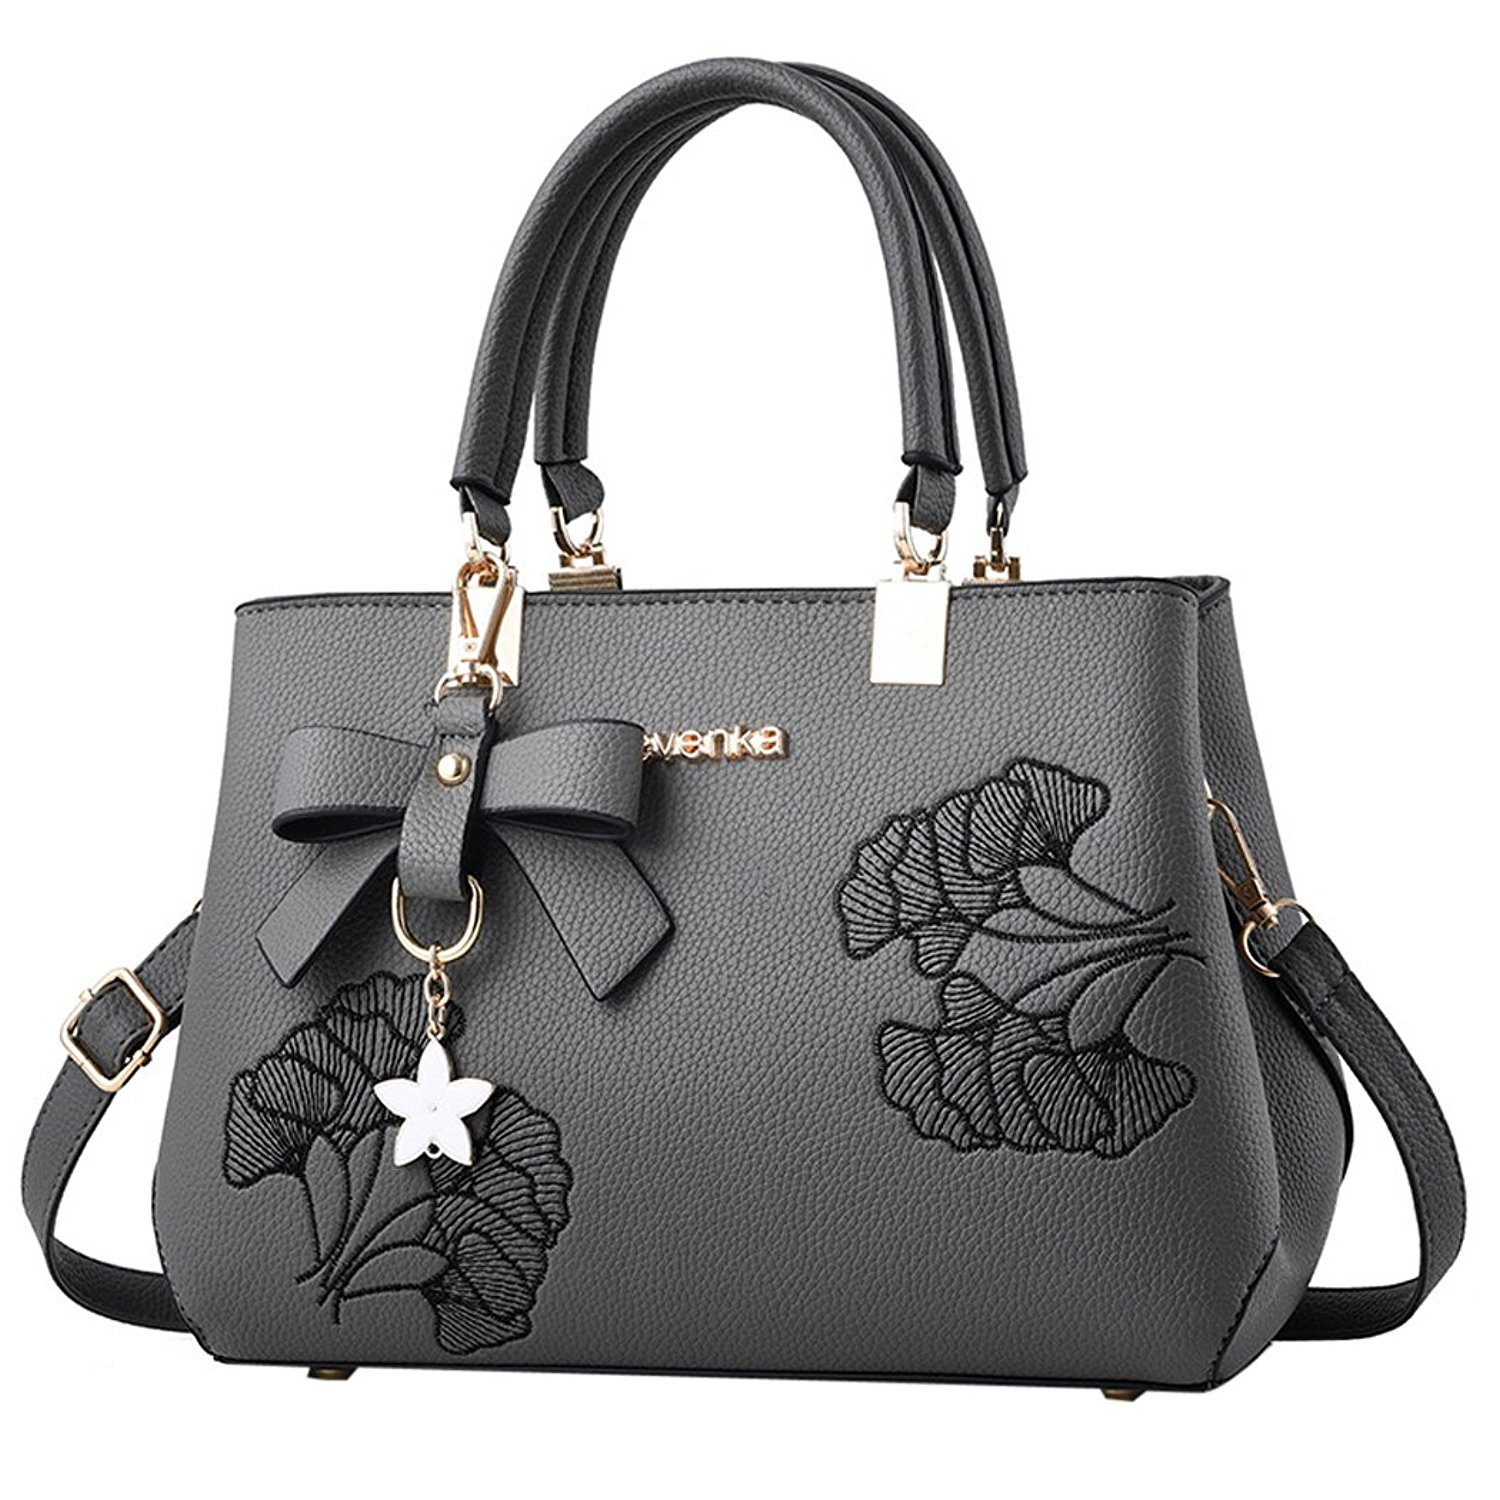 Handbags for Women - Bageek Satchel Handbags Top Handle Bag Women PU Leather Purses Black Handbag on Sale Satchel Bag with Flower Pendant